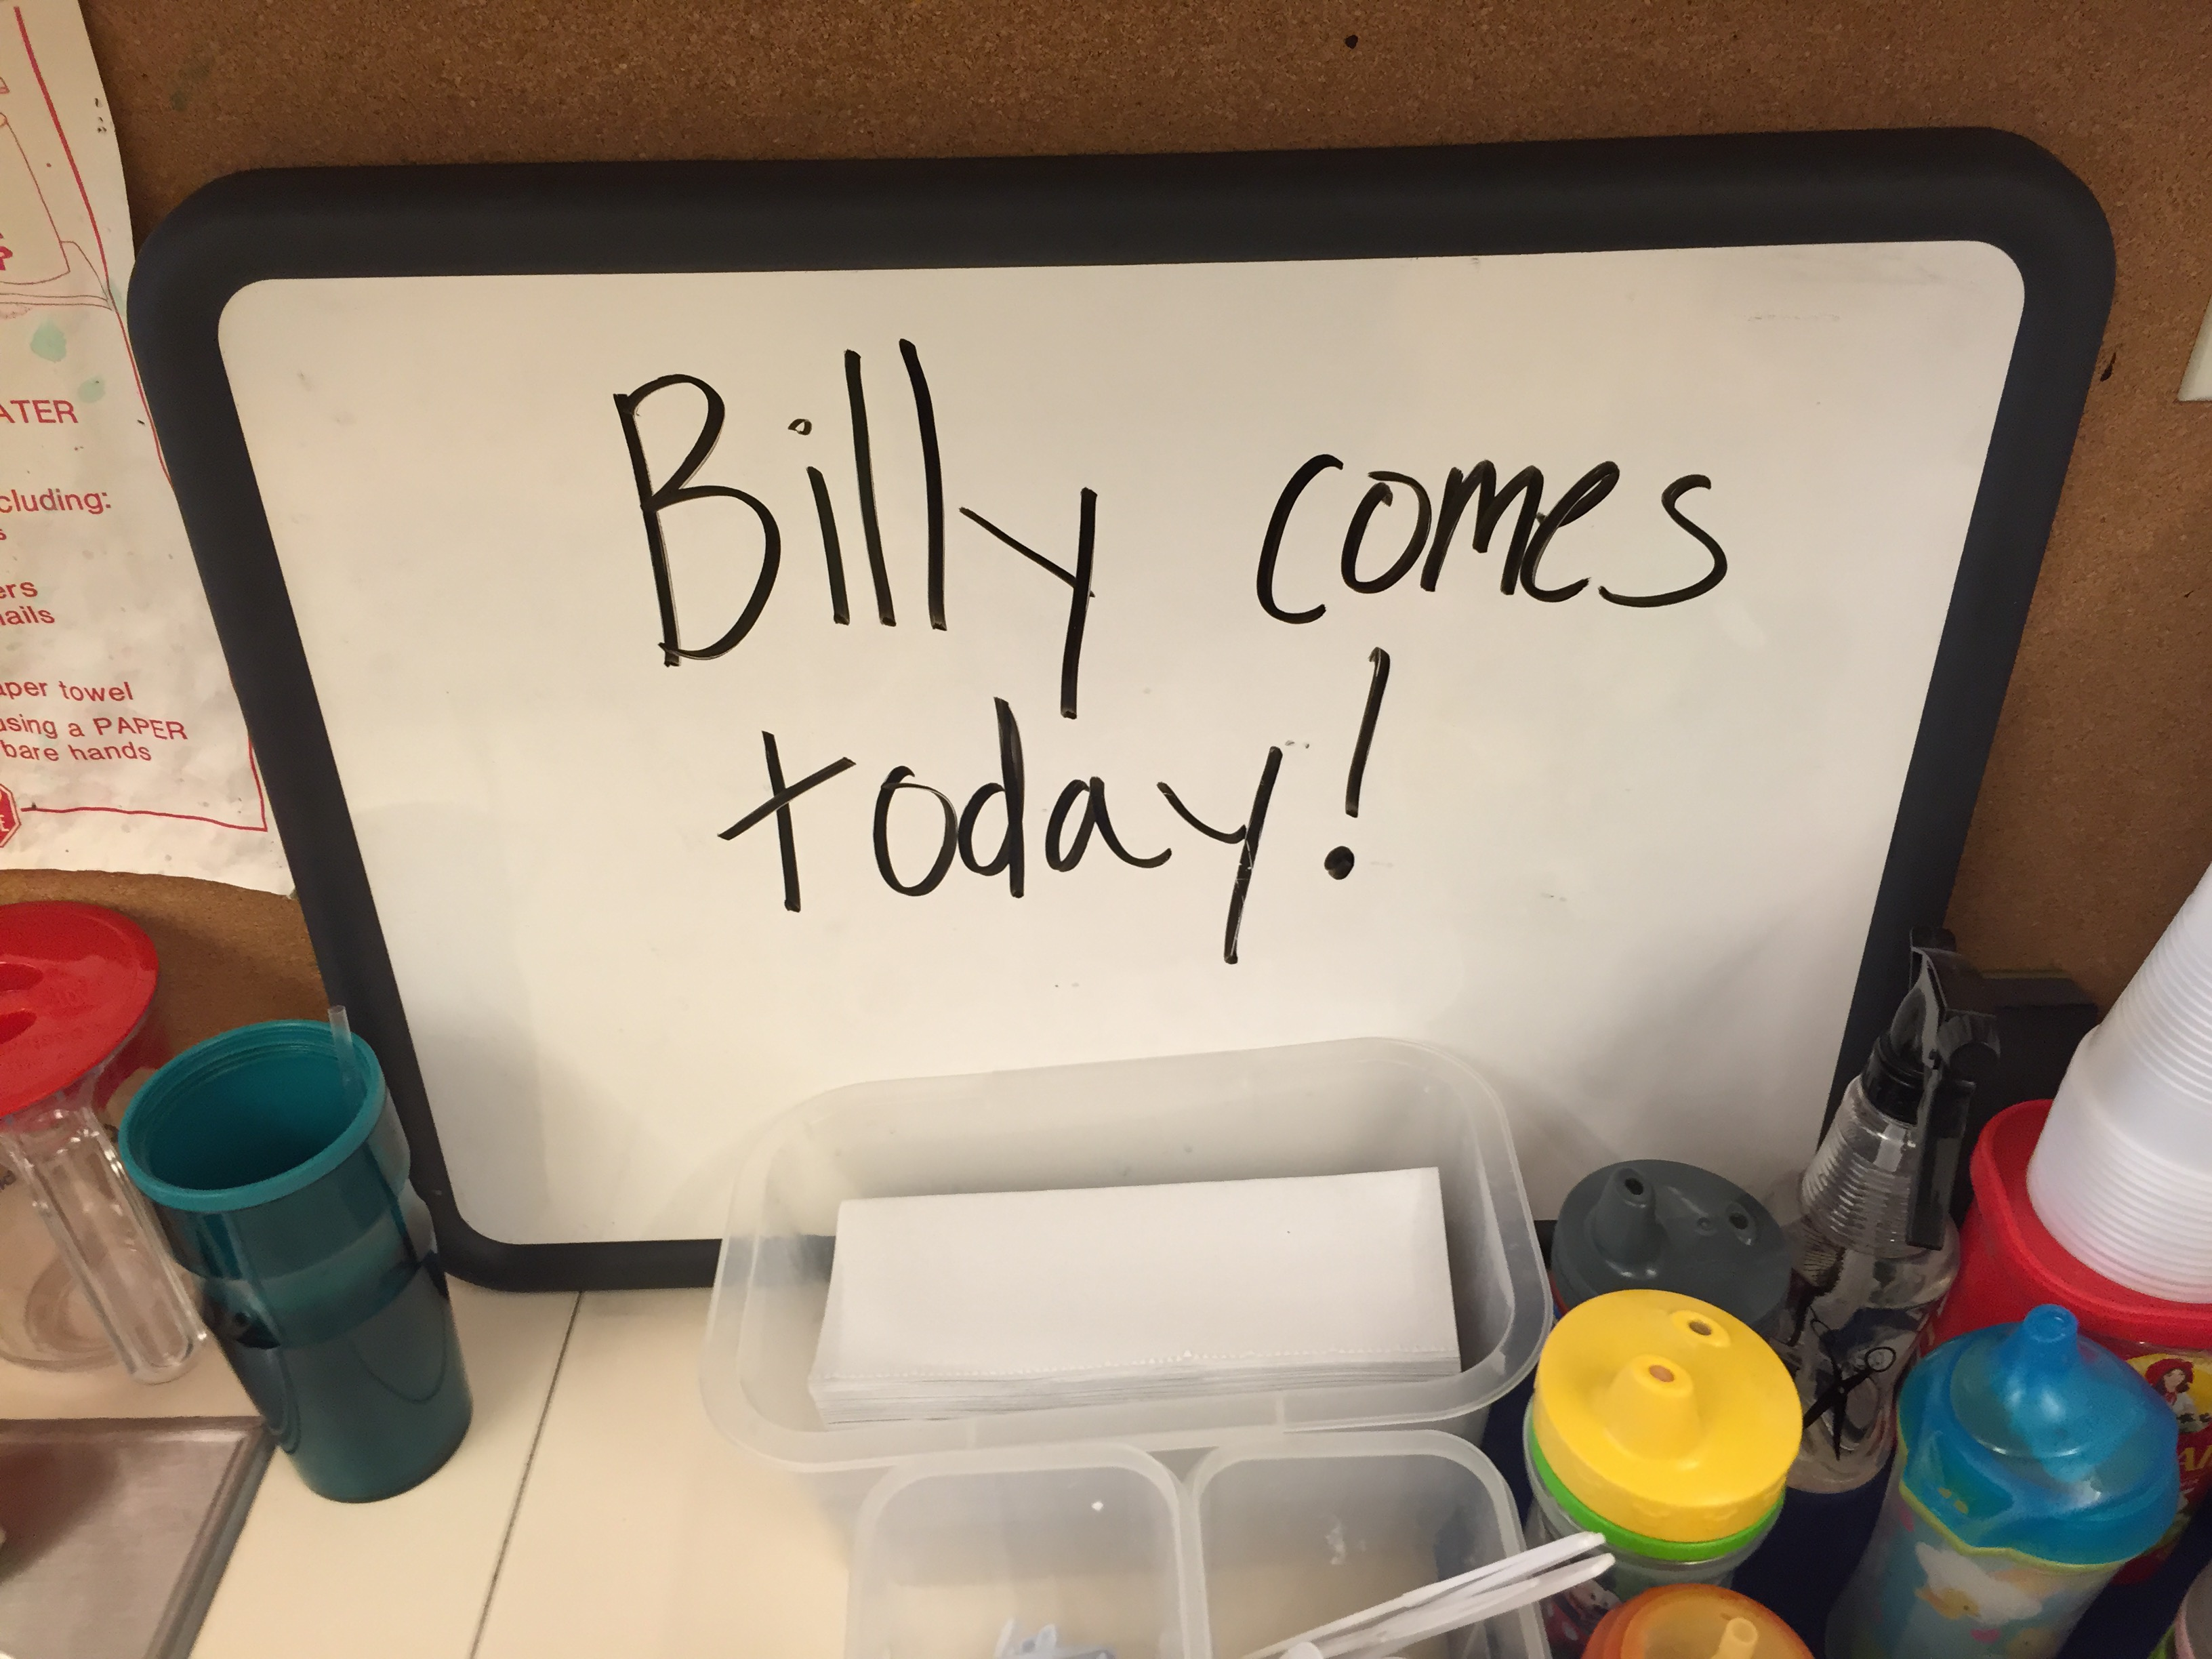 Billycomestoday